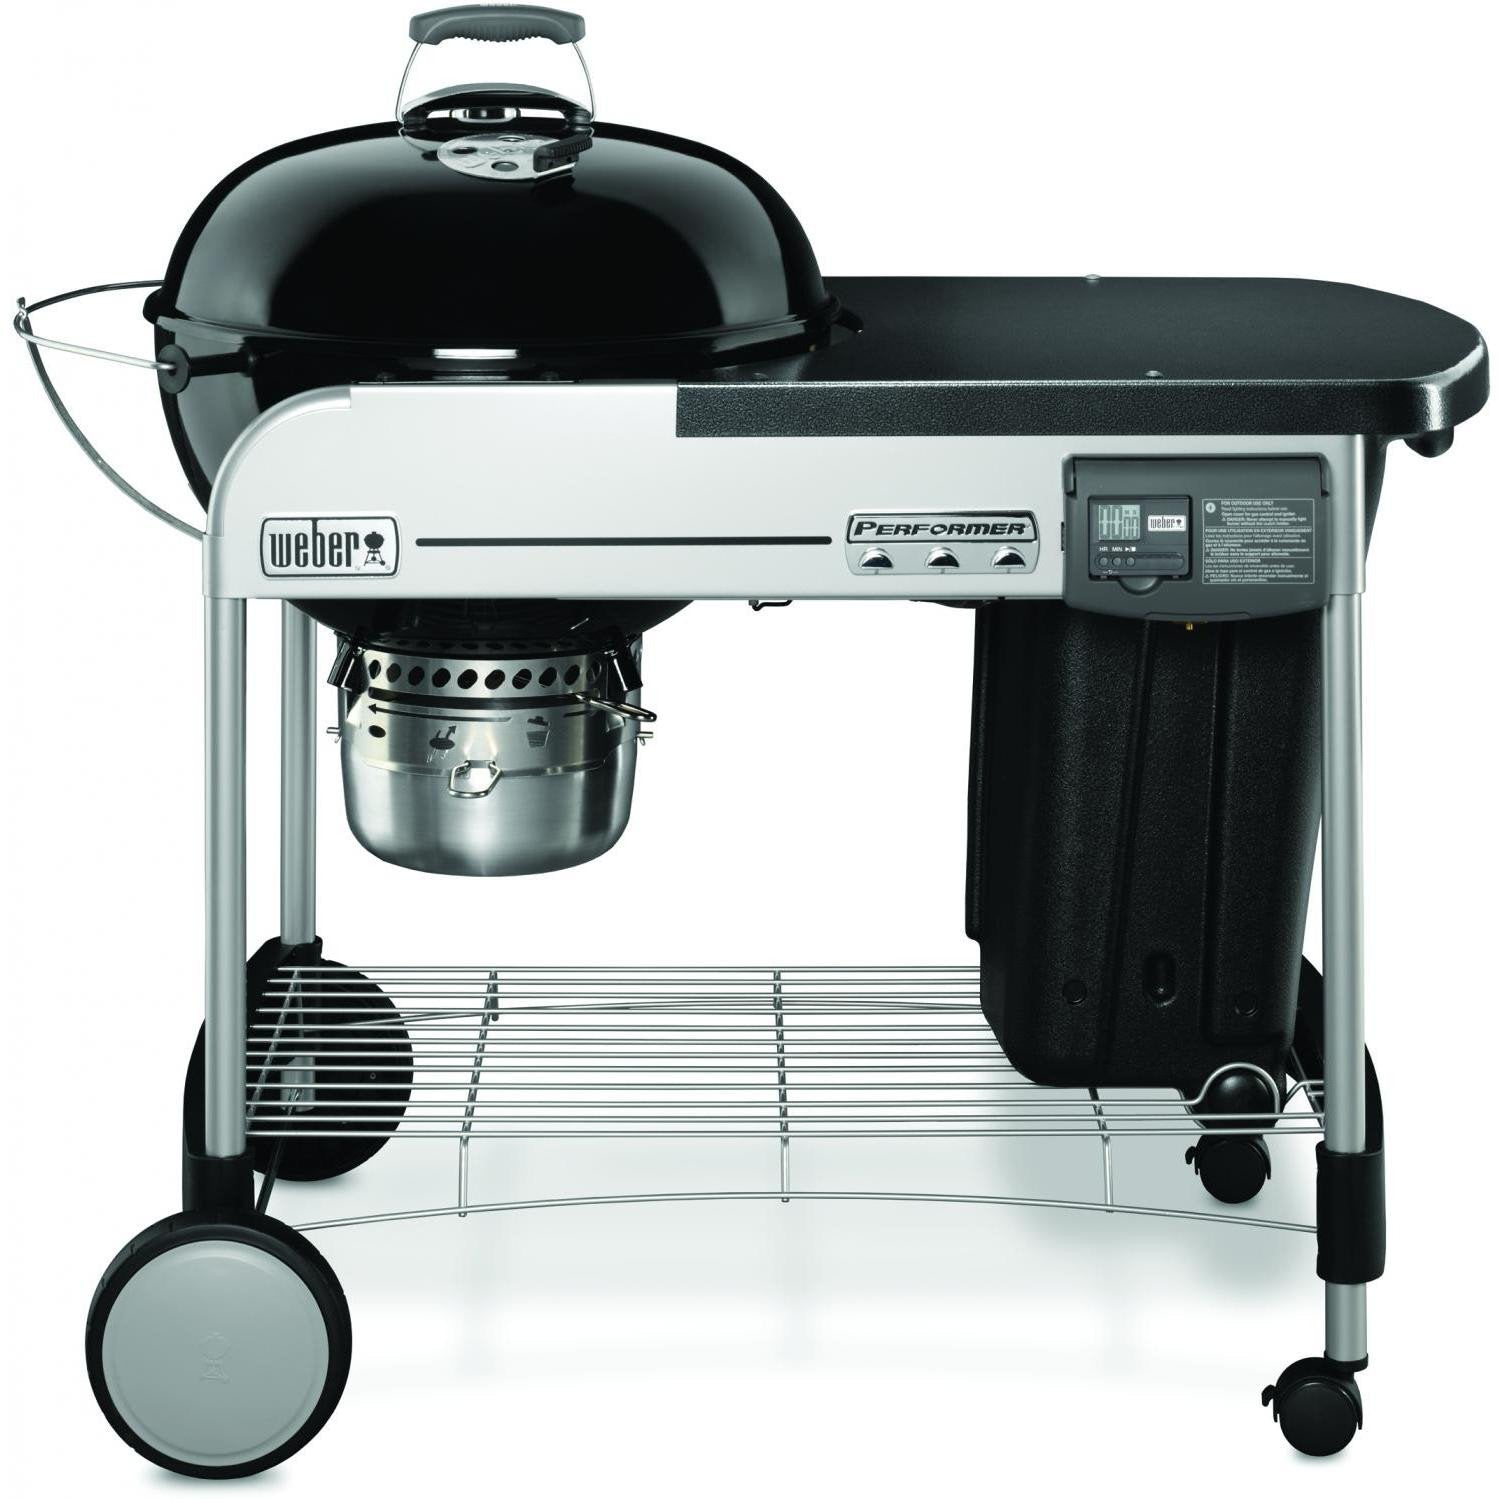 Weber Performer Deluxe Freestanding 22-Inch Charcoal Grill, Black